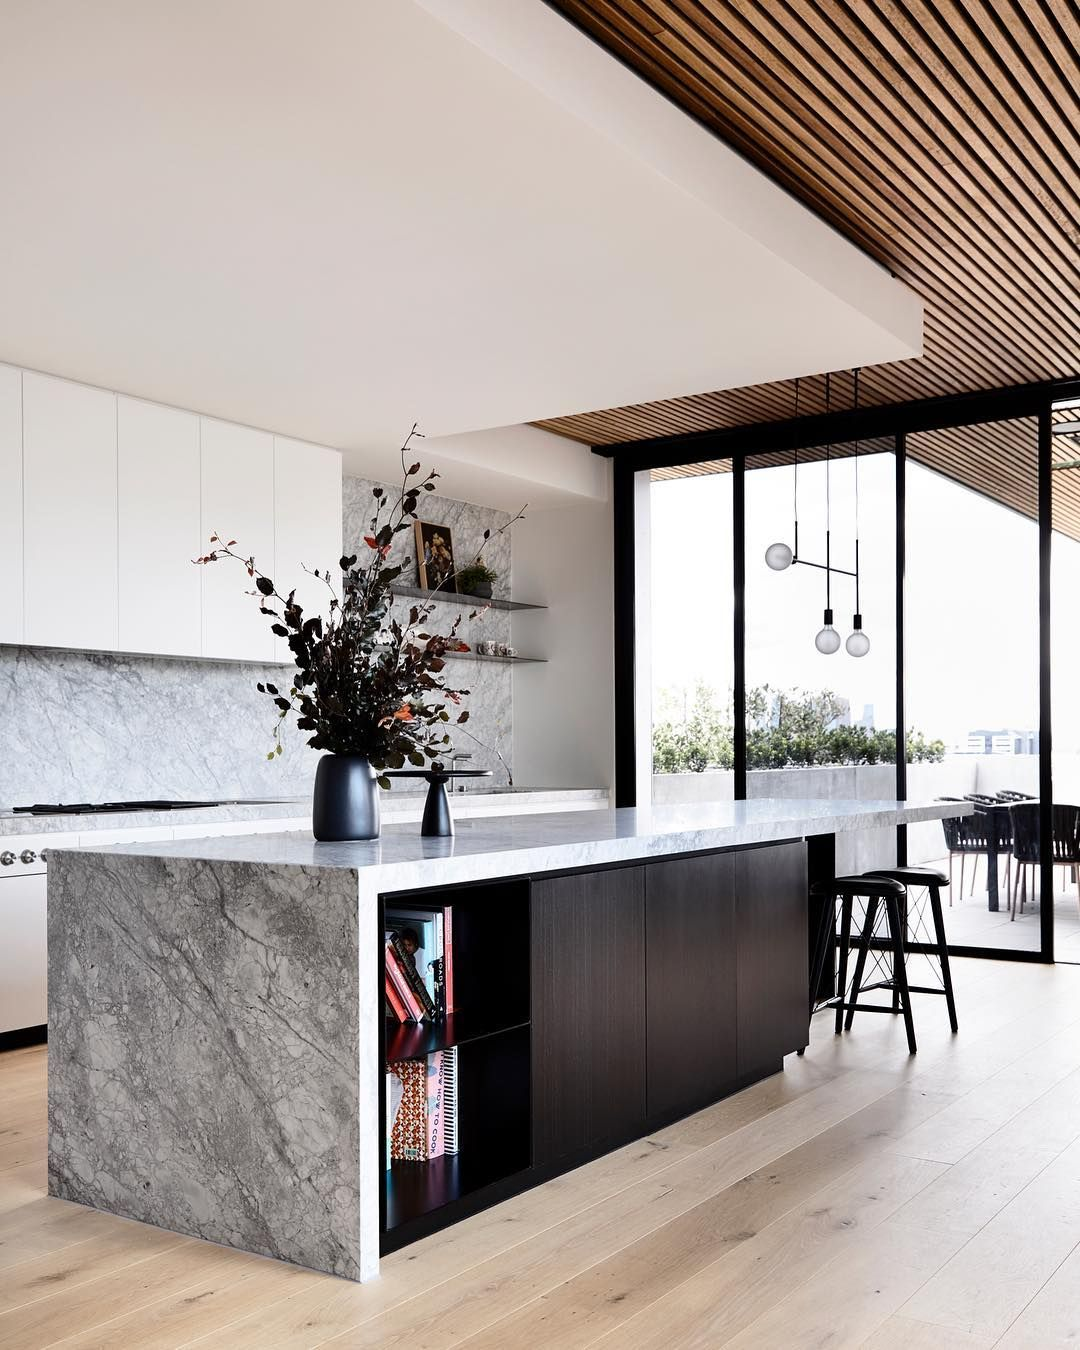 Common Kitchen Design Mistakes Overlooking Fillers And Panels: Top 7 Glass Ball Feature Lights: Shop The Latest Lighting